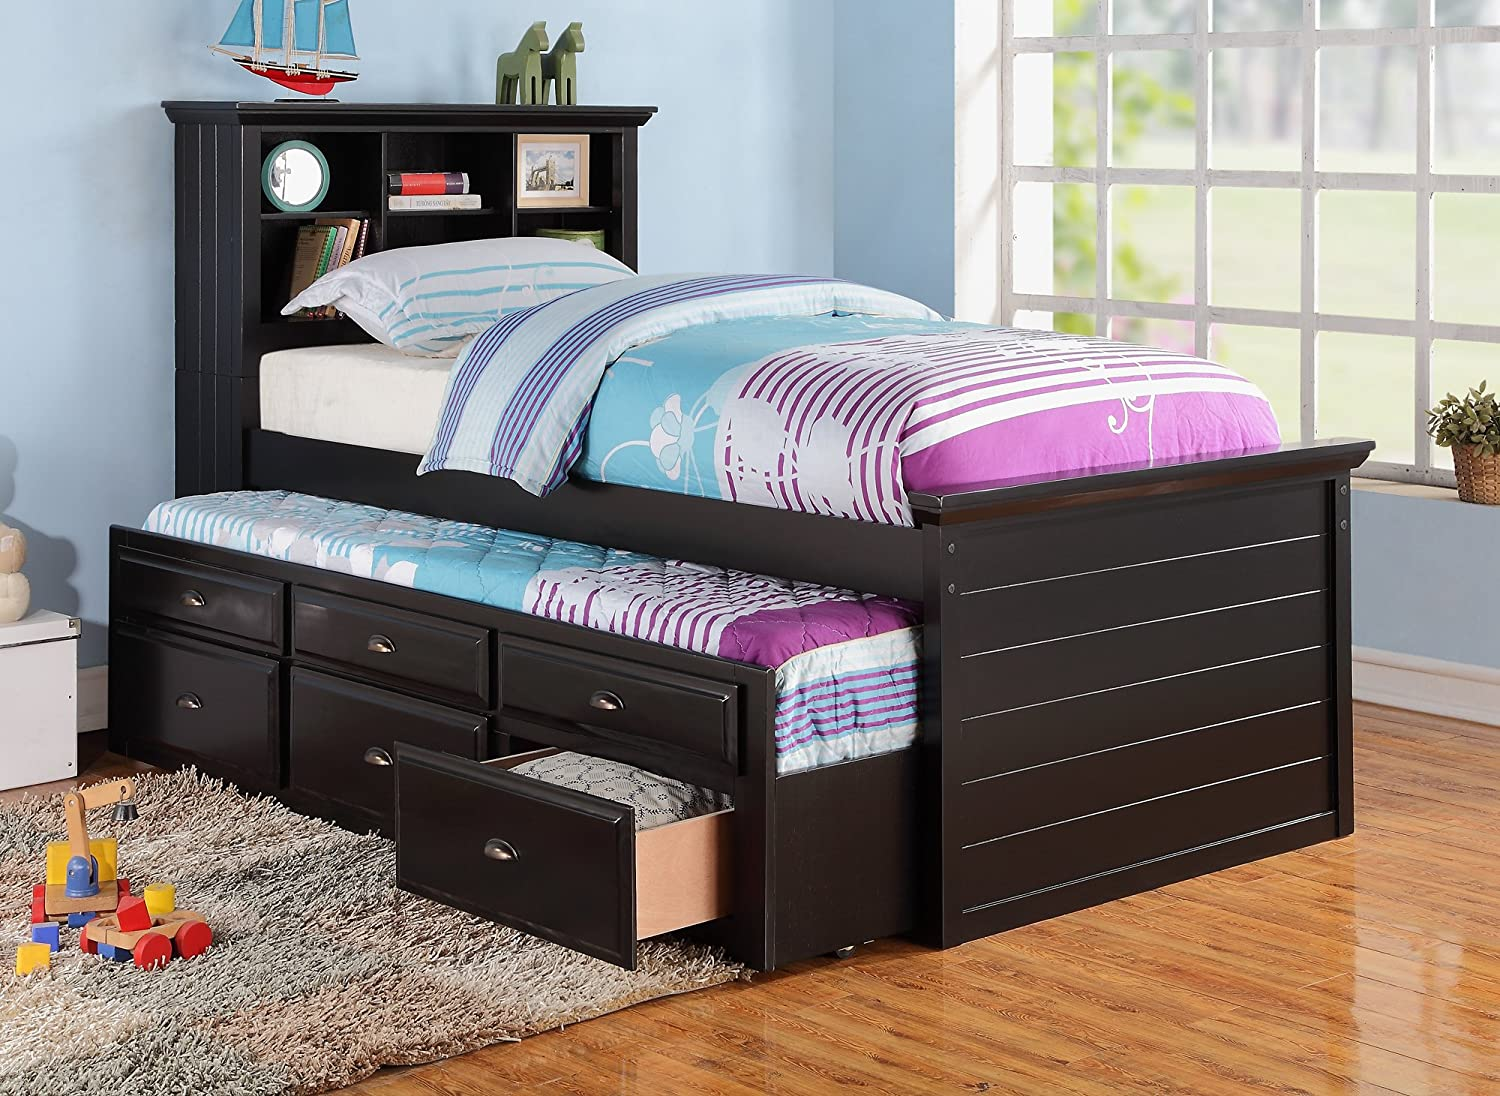 Amazon BLACK CAPTAIN TWIN BOOKCASE BED W TRUNDLE AND 3 DRAWERS STORAGE Kitchen Dining